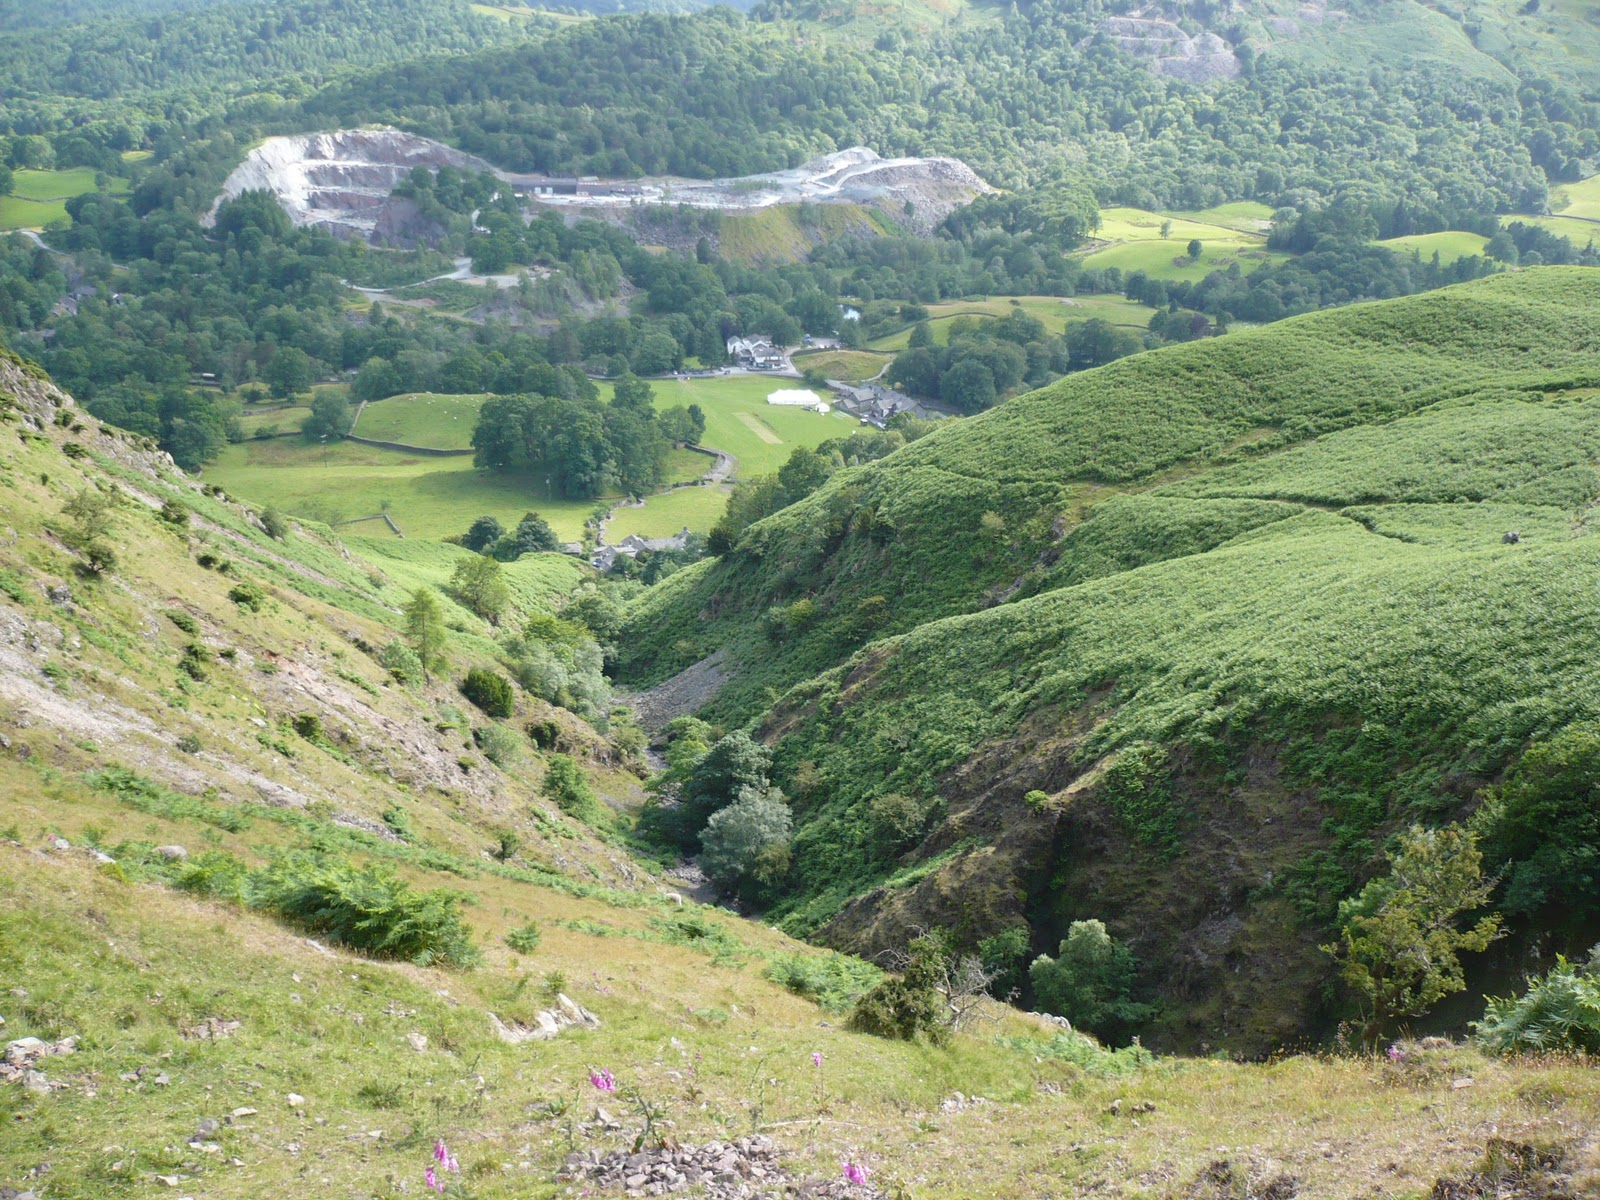 Hartsop hall cottages 171 walking holiday cottages walking - Megs Gill And Elterwater Green Slate Quarry From The Flank Of Silver How Ldw 202